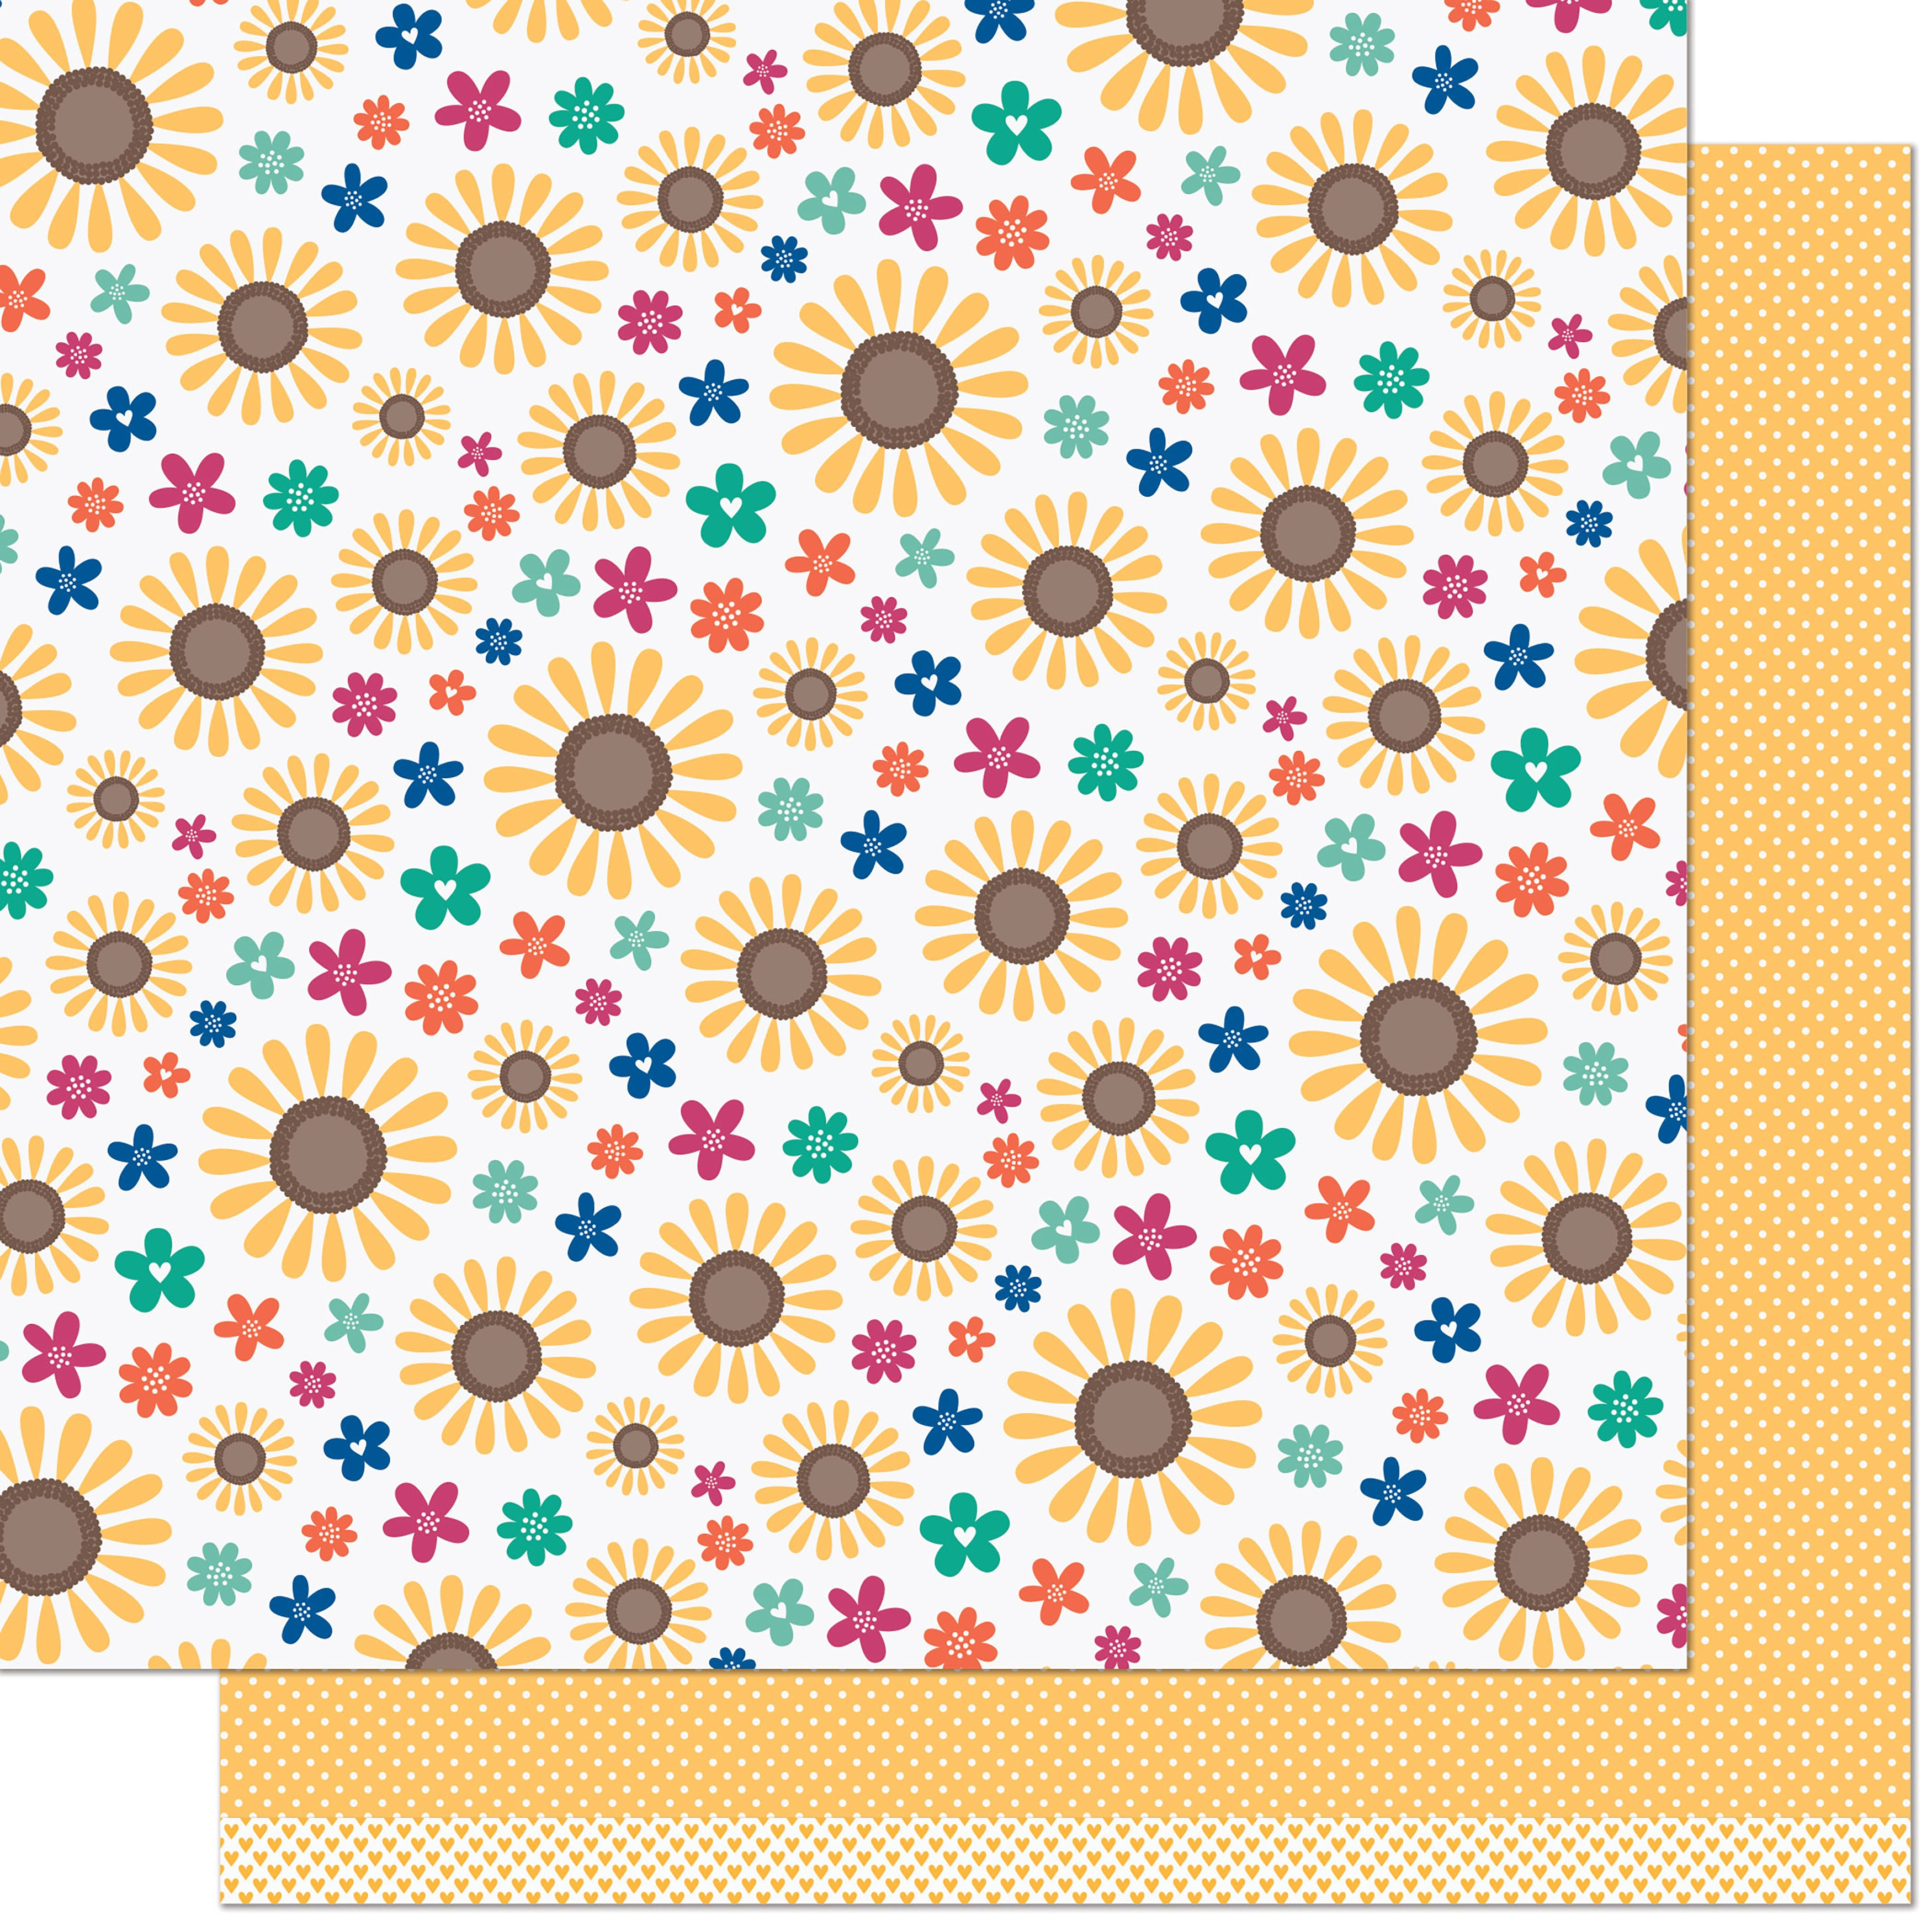 Lawn Fawn - Sweater Weather Remix  - SUNNY REMIX - 12x12 Double-Sided Paper